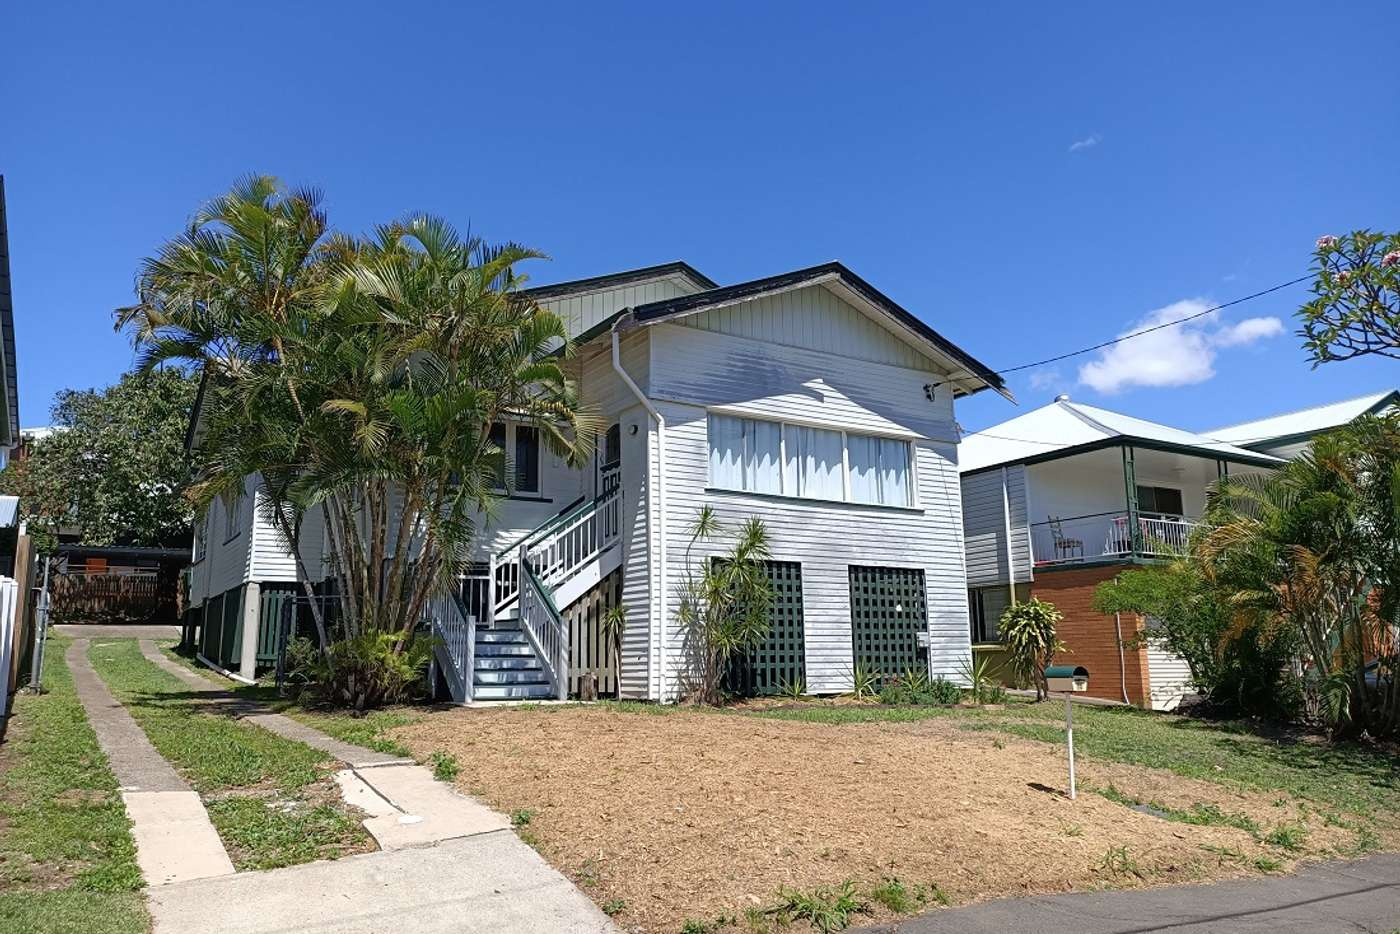 Main view of Homely house listing, 10 Bruce Street, Woolloongabba QLD 4102